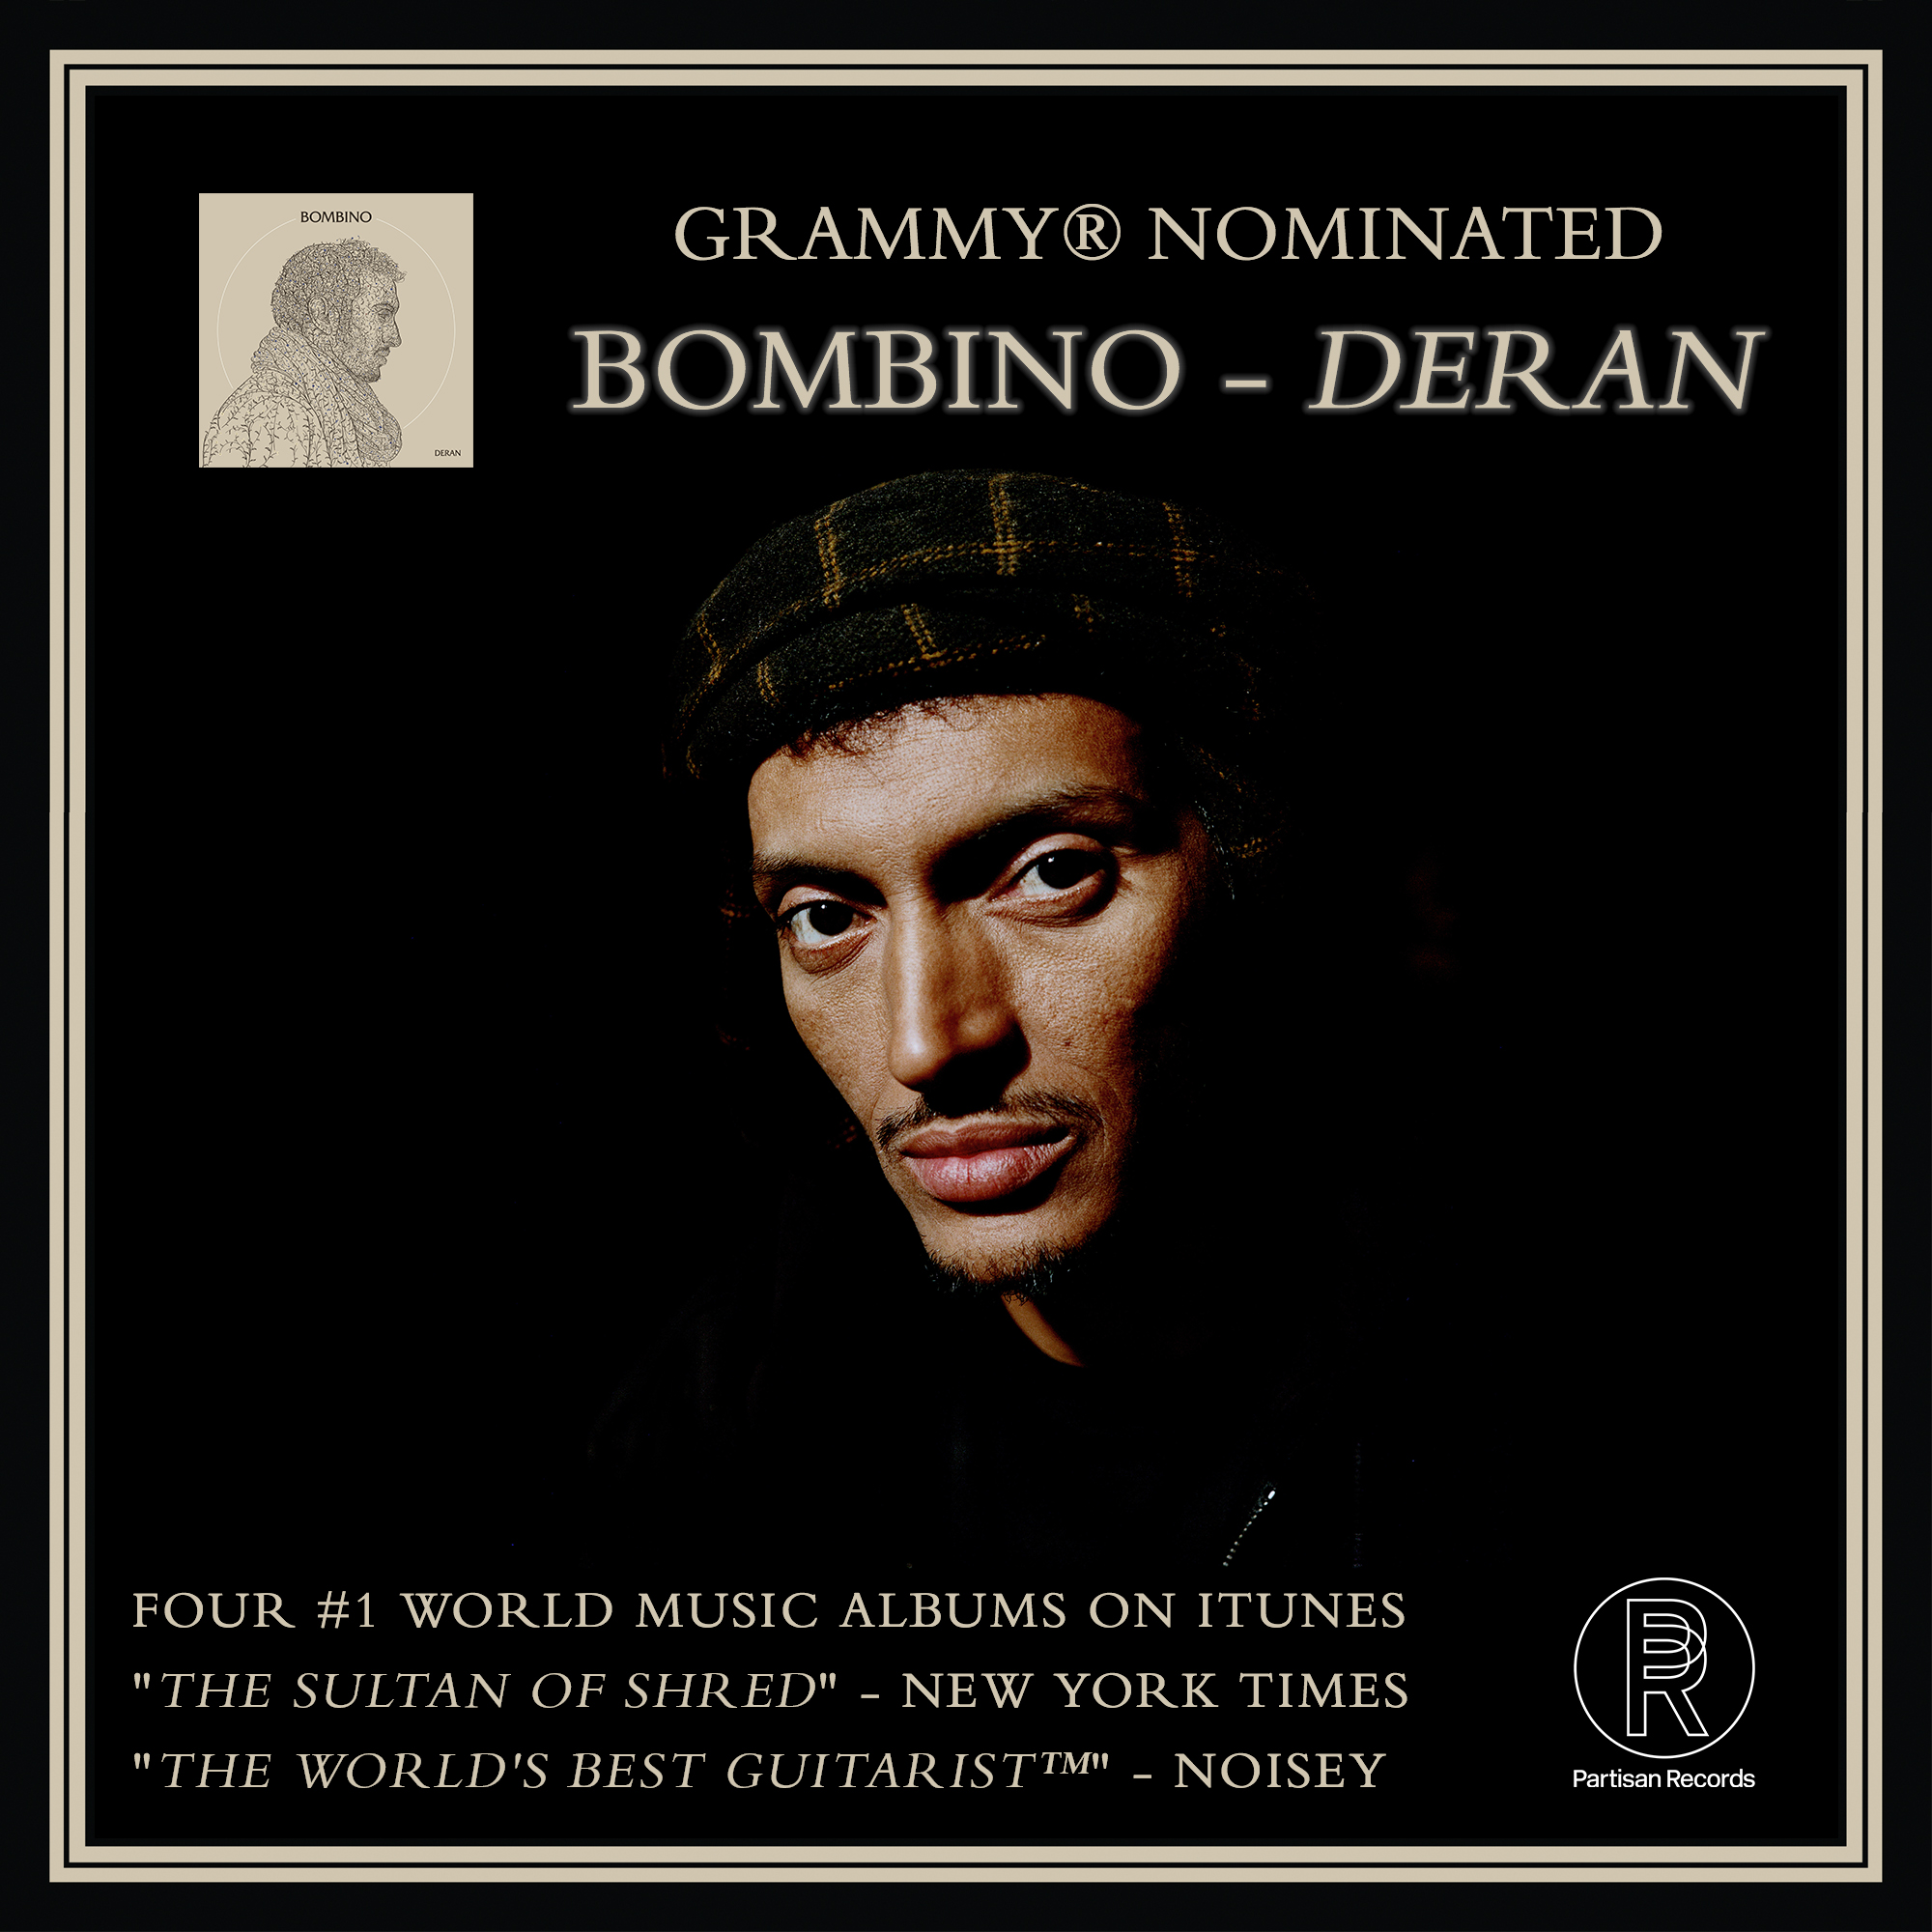 Bombino_Grammy_graphic copy.jpg